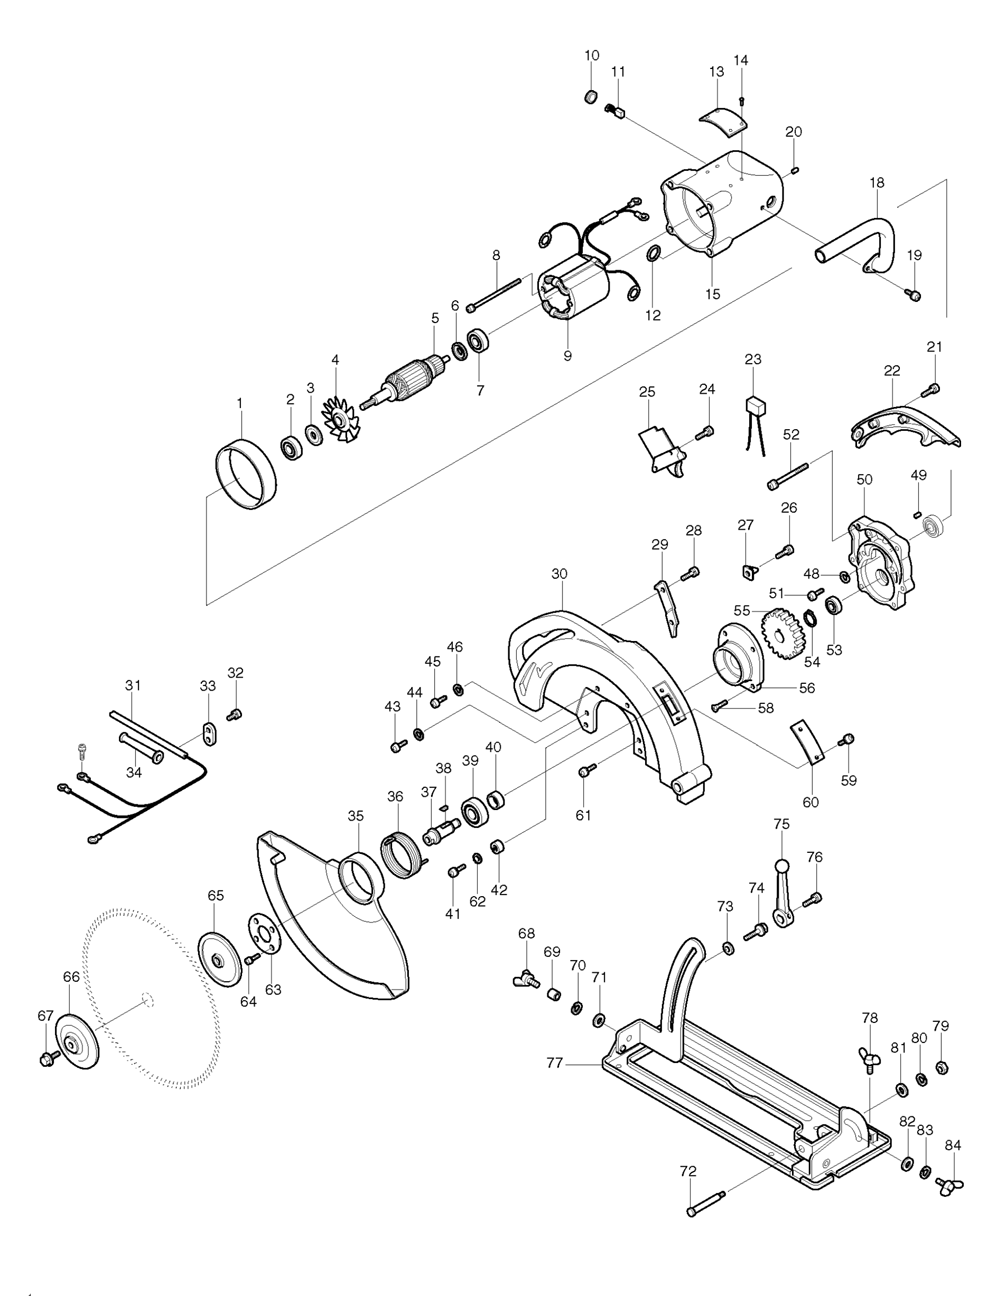 Buy Makita 5401n Replacement Tool Parts A Href Wilton D6 List And Diagram Ereplacementpartscom Schematic